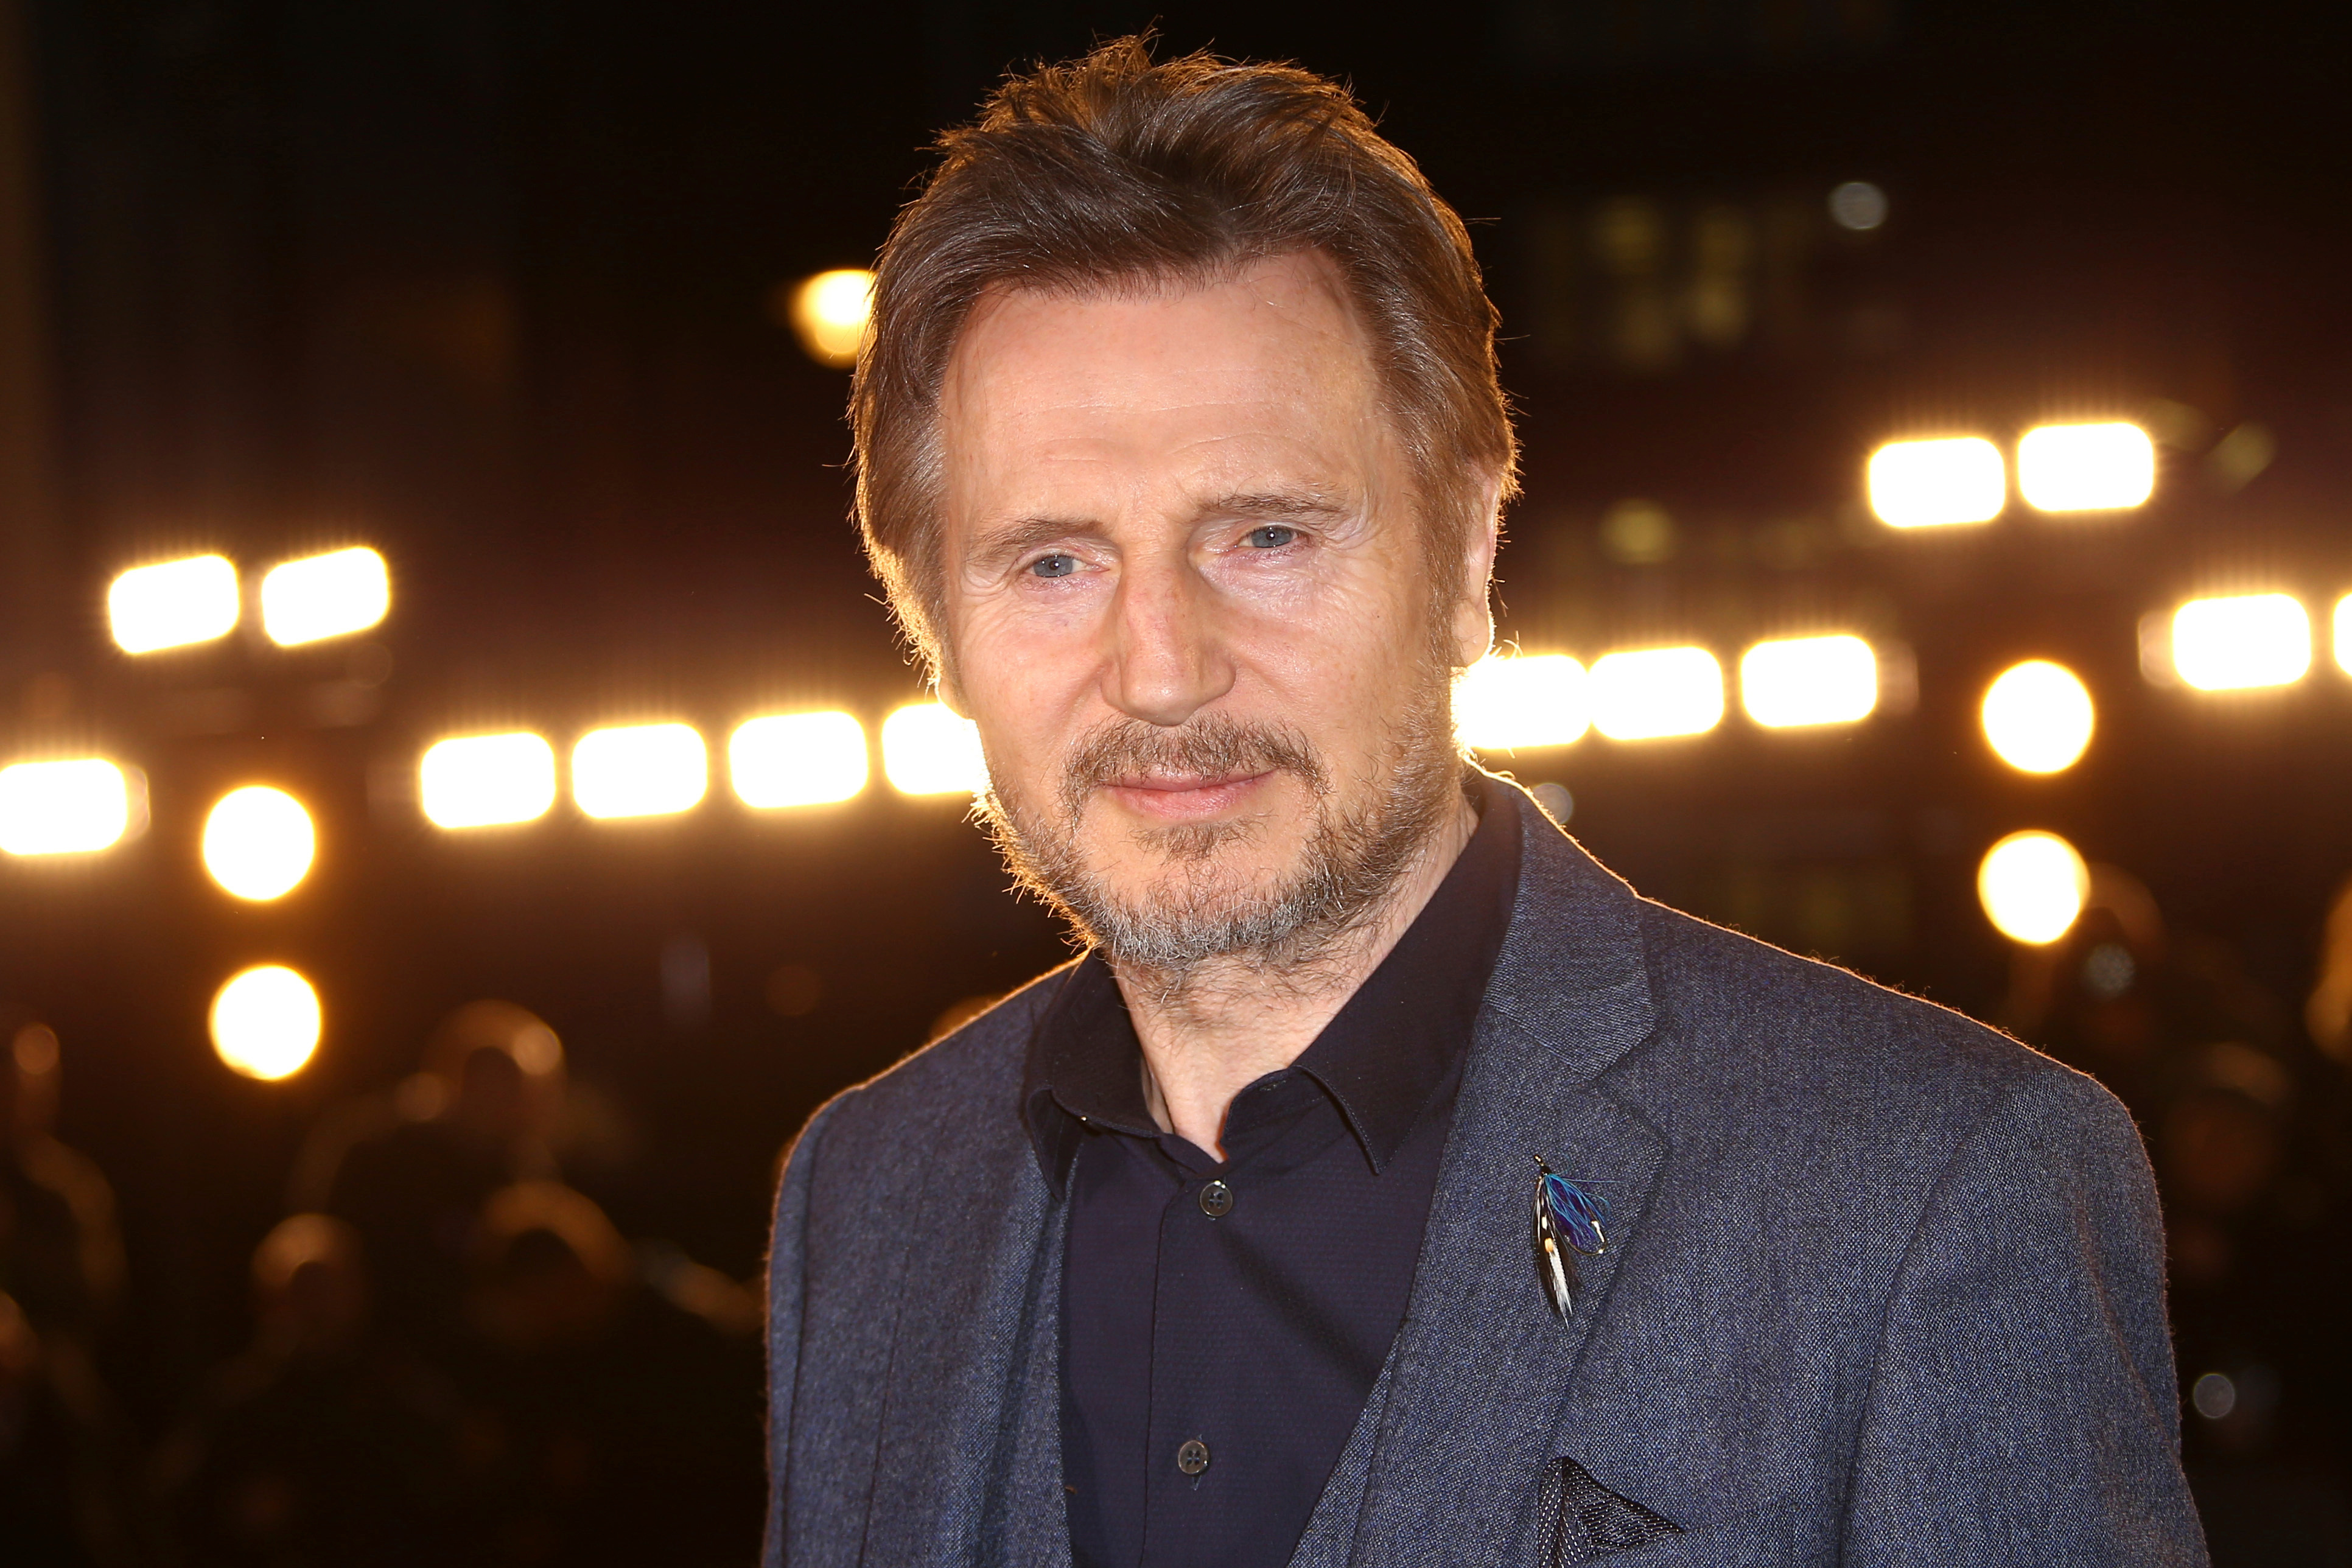 Liam Neeson Apologizes for 'Unacceptable Thoughts,' Racist Revenge Fantasy